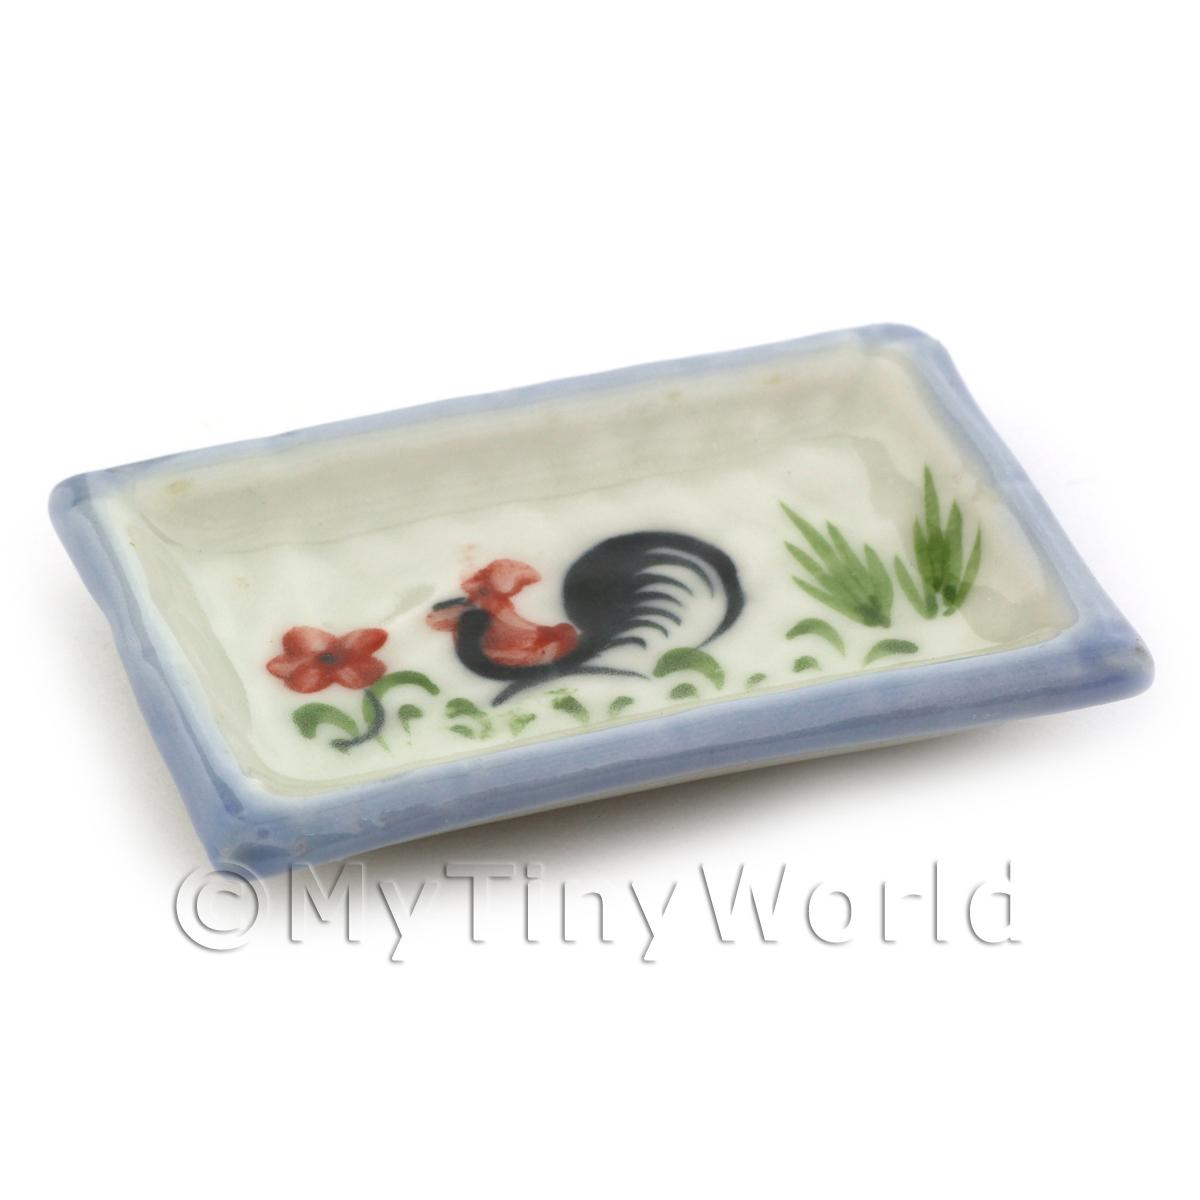 Dolls House Miniature 35mm x 52mm White Ceramic Cockerel Plate With Blue Edge